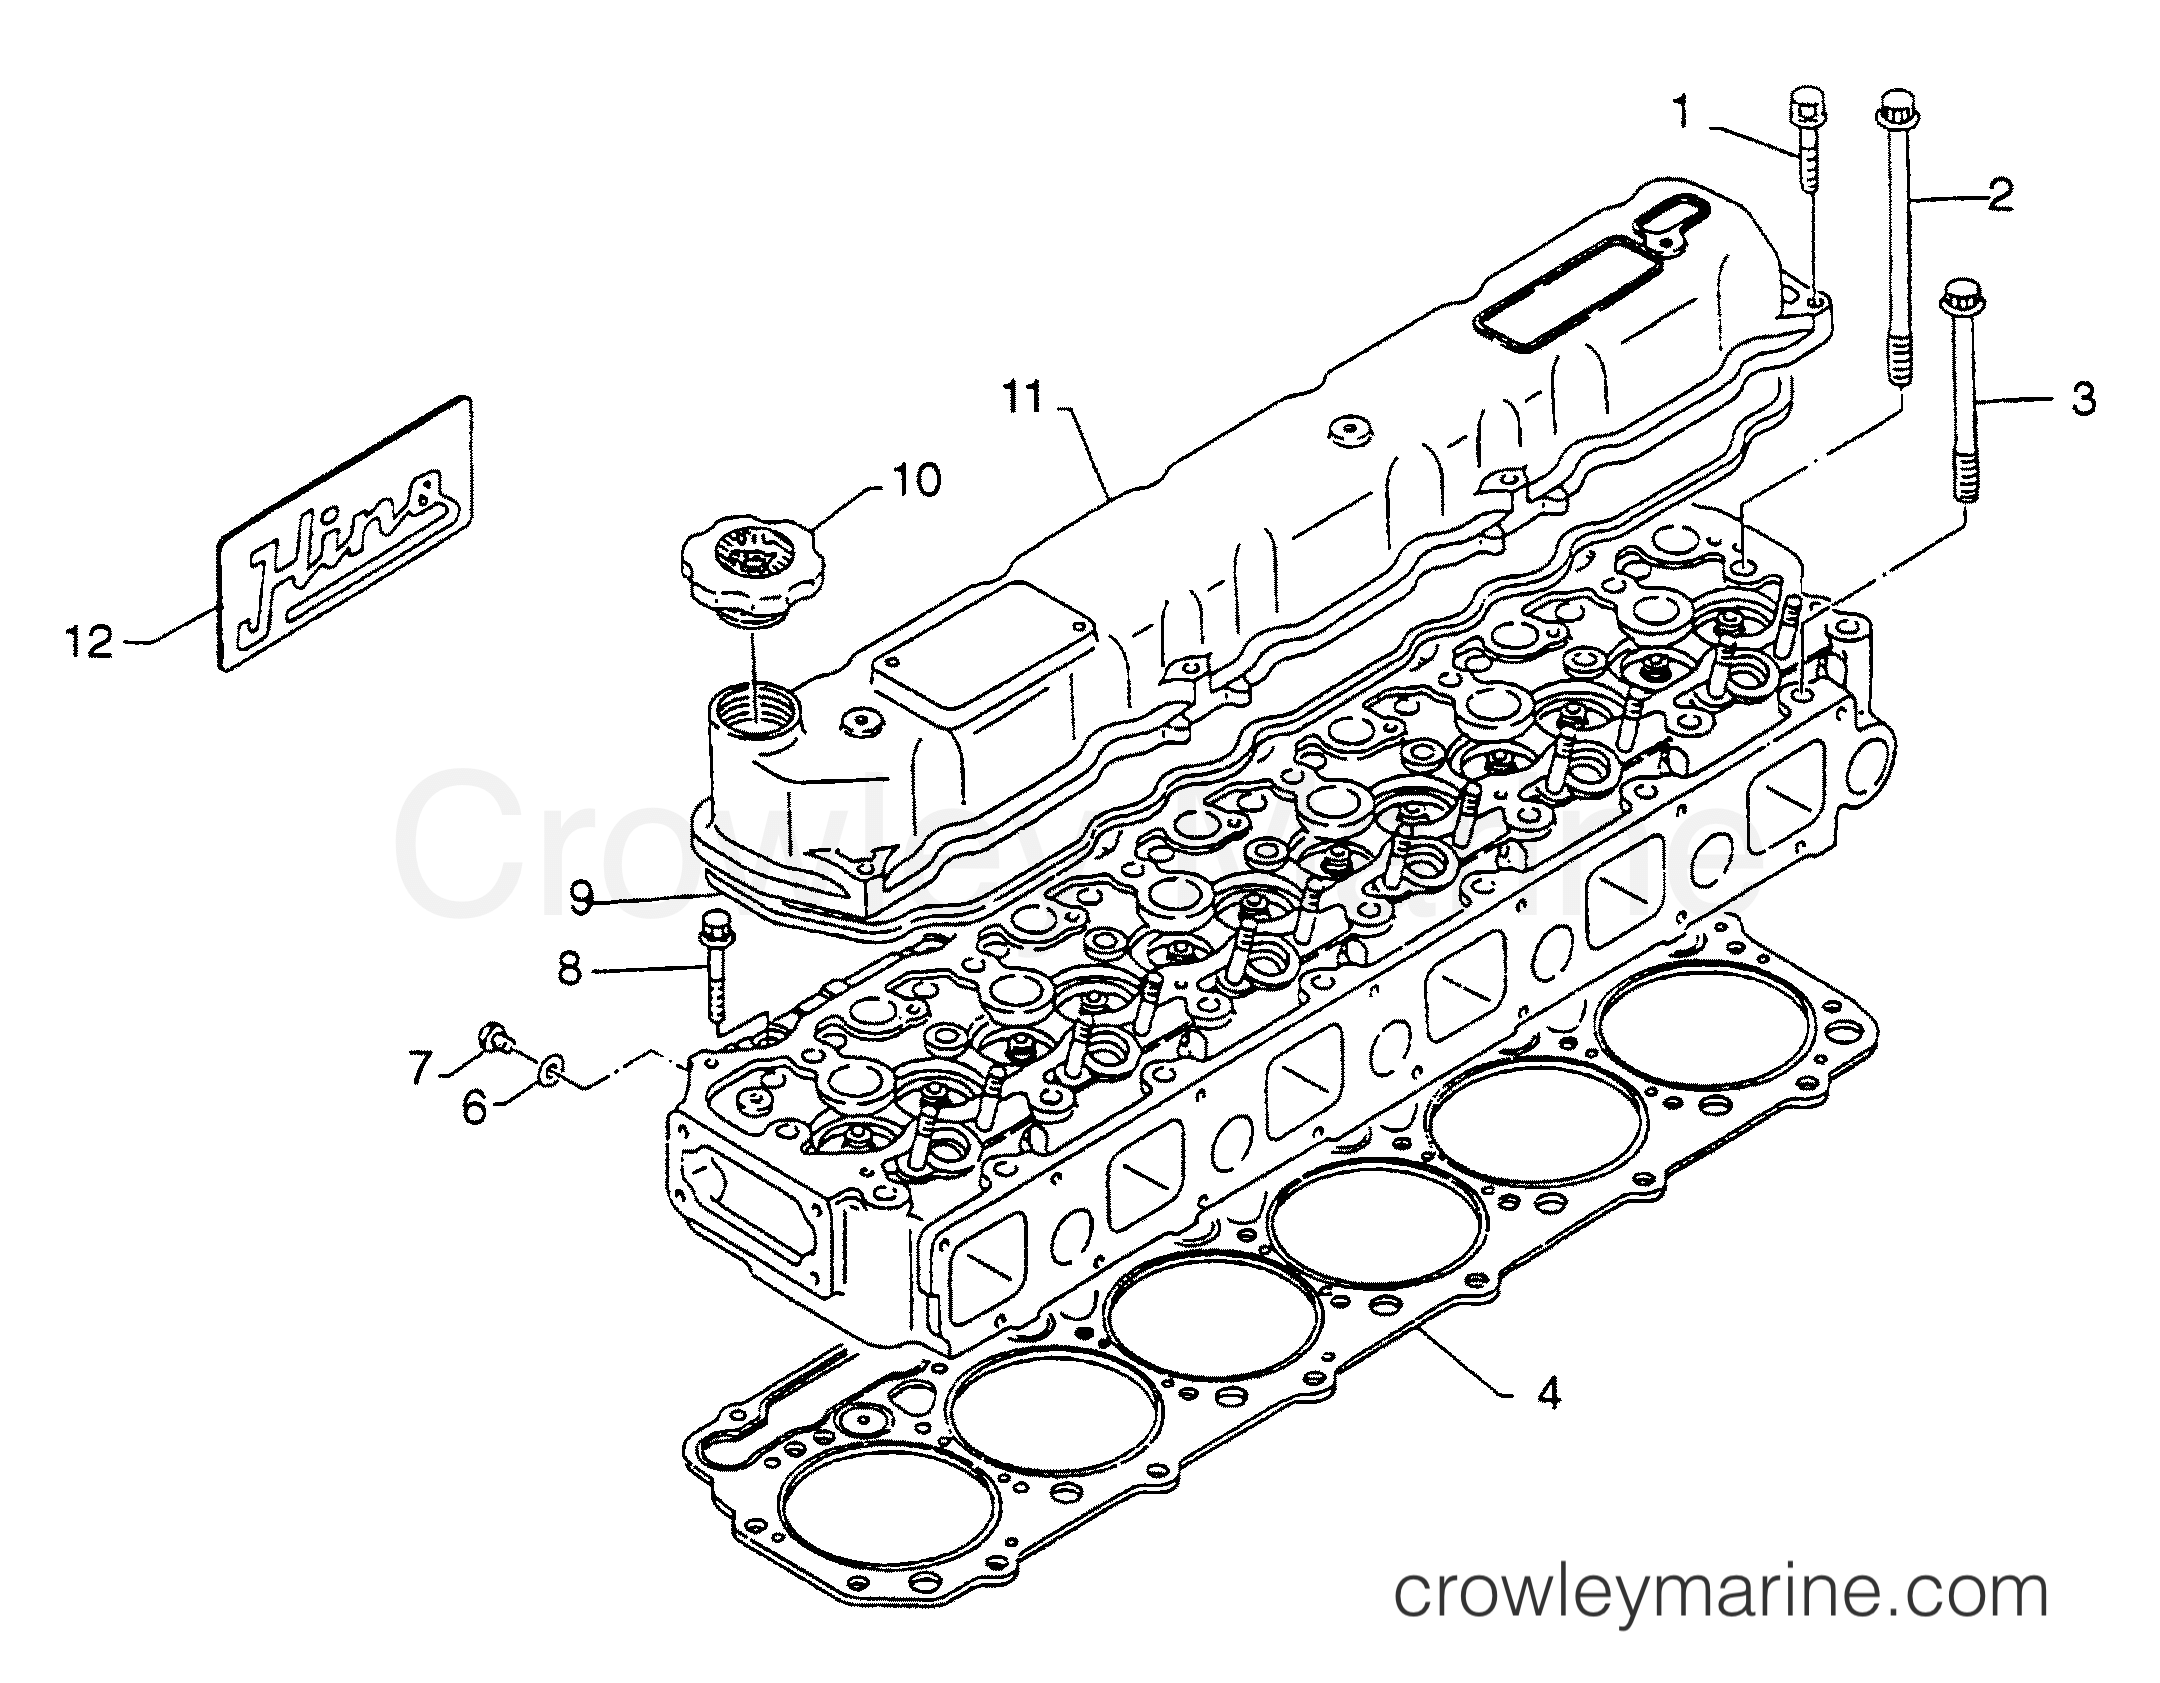 Head Components